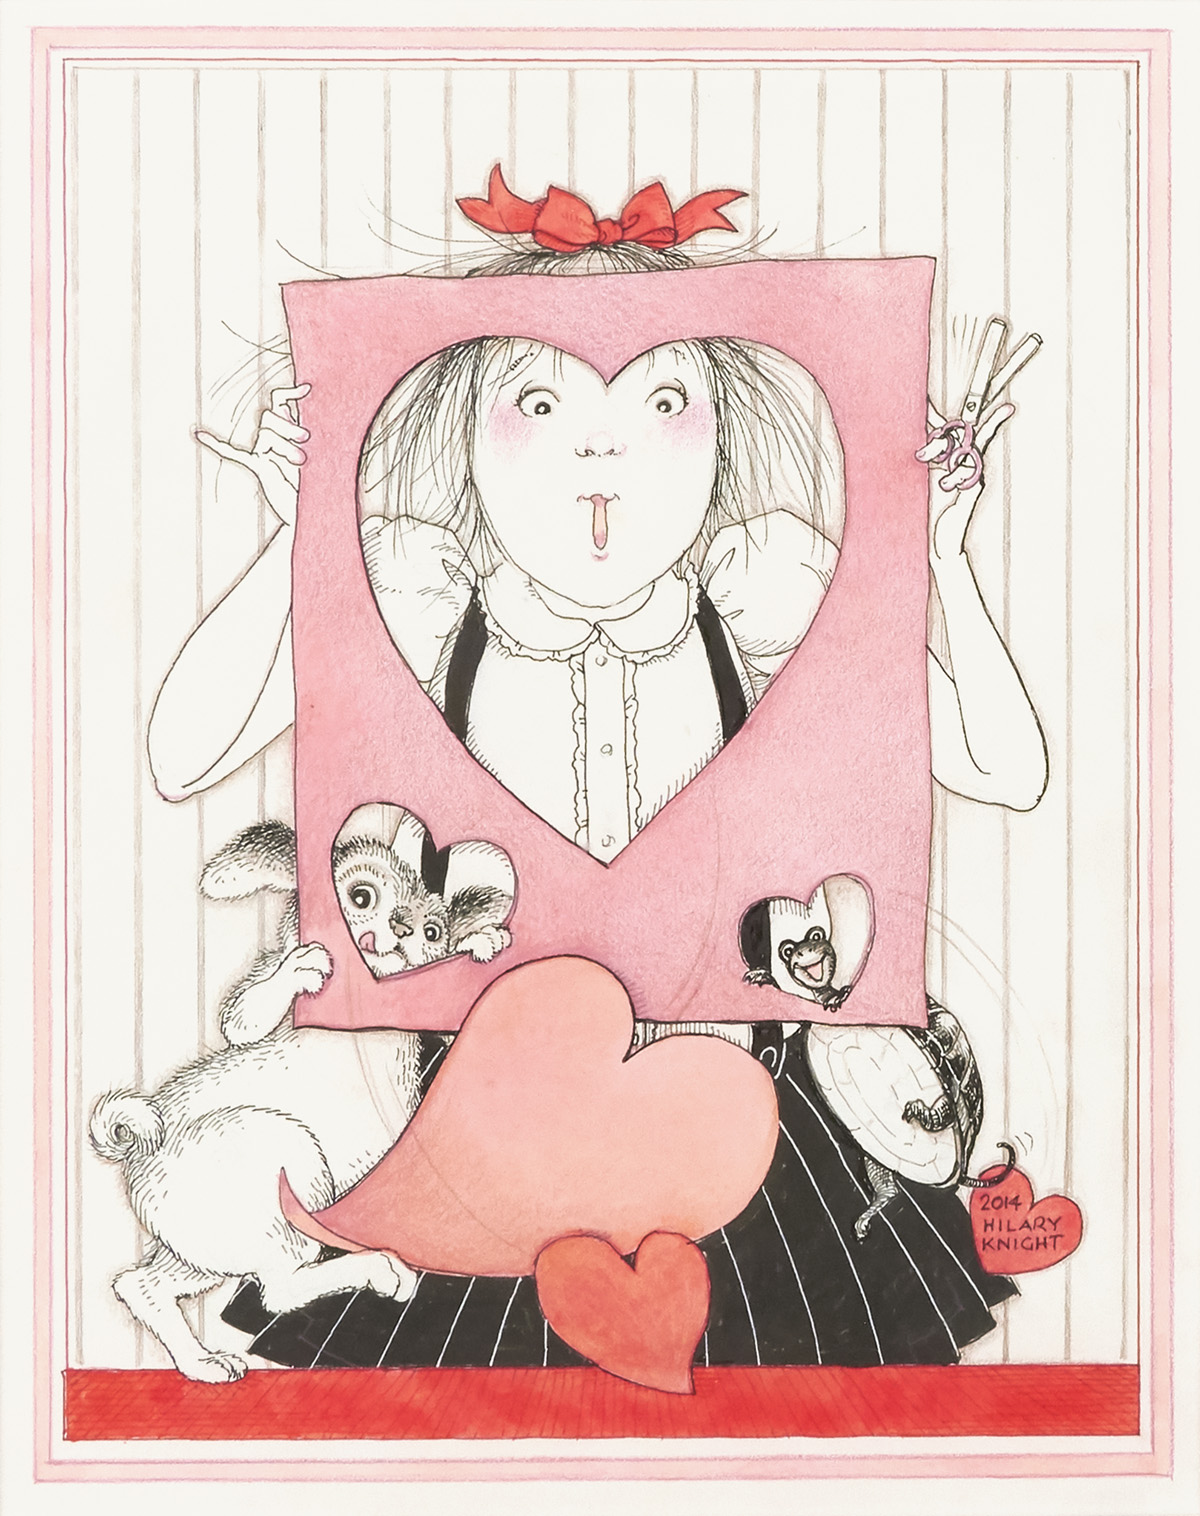 HILARY-KNIGHT-Eloise-with-Valentine-[CHILDRENS--HOLIDAYS]